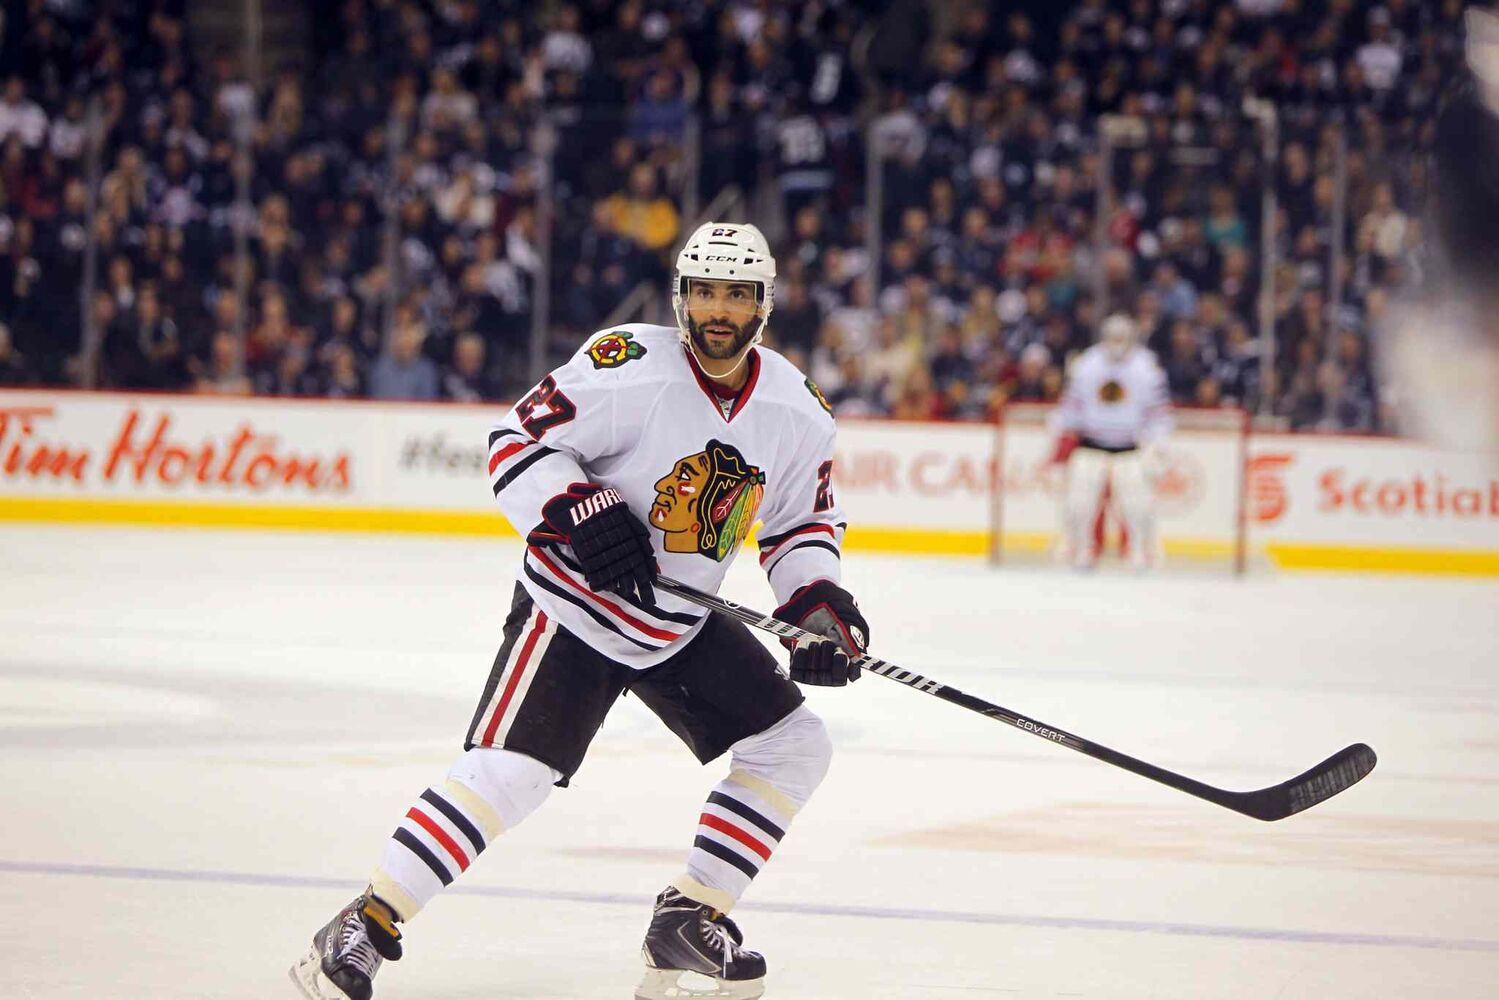 Chicago Blackhawks defenceman Johnny Oduya plays the point during the third period.